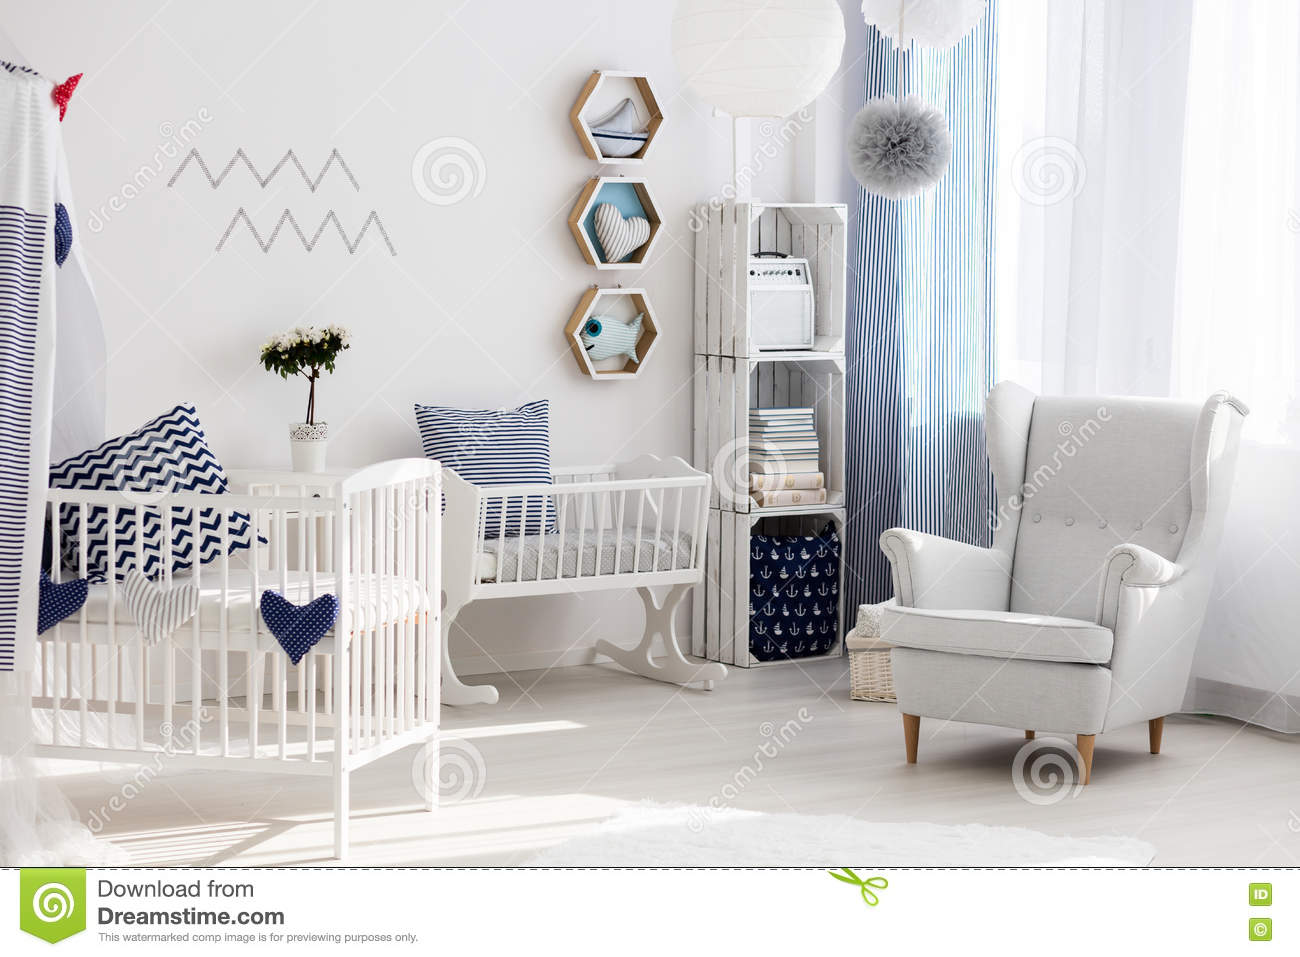 Nursery with white chair and cradle